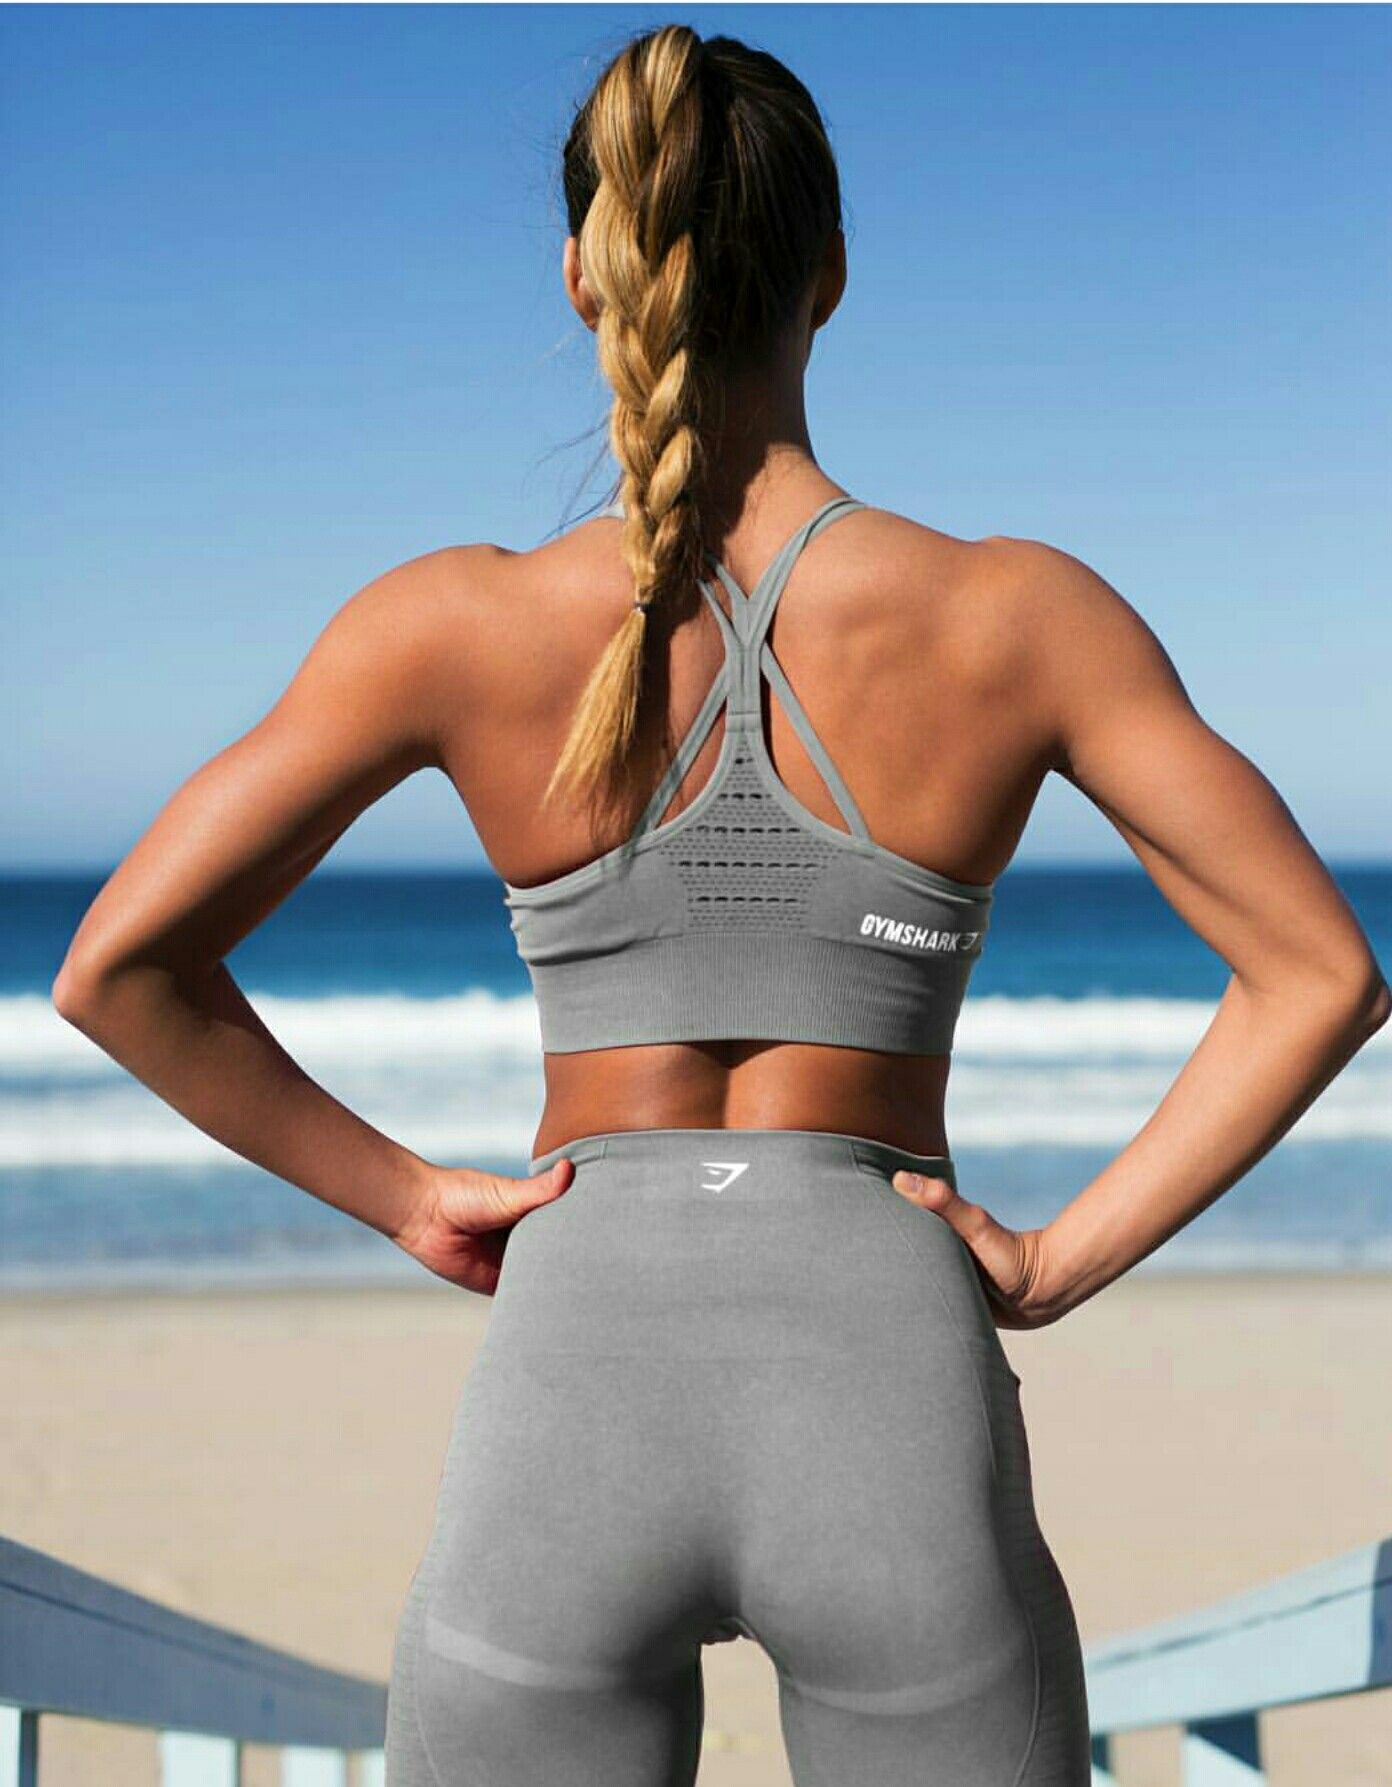 Workout Feel Great Fitness Motivation Fitness Motivation Fitness Fashion Workout Attire